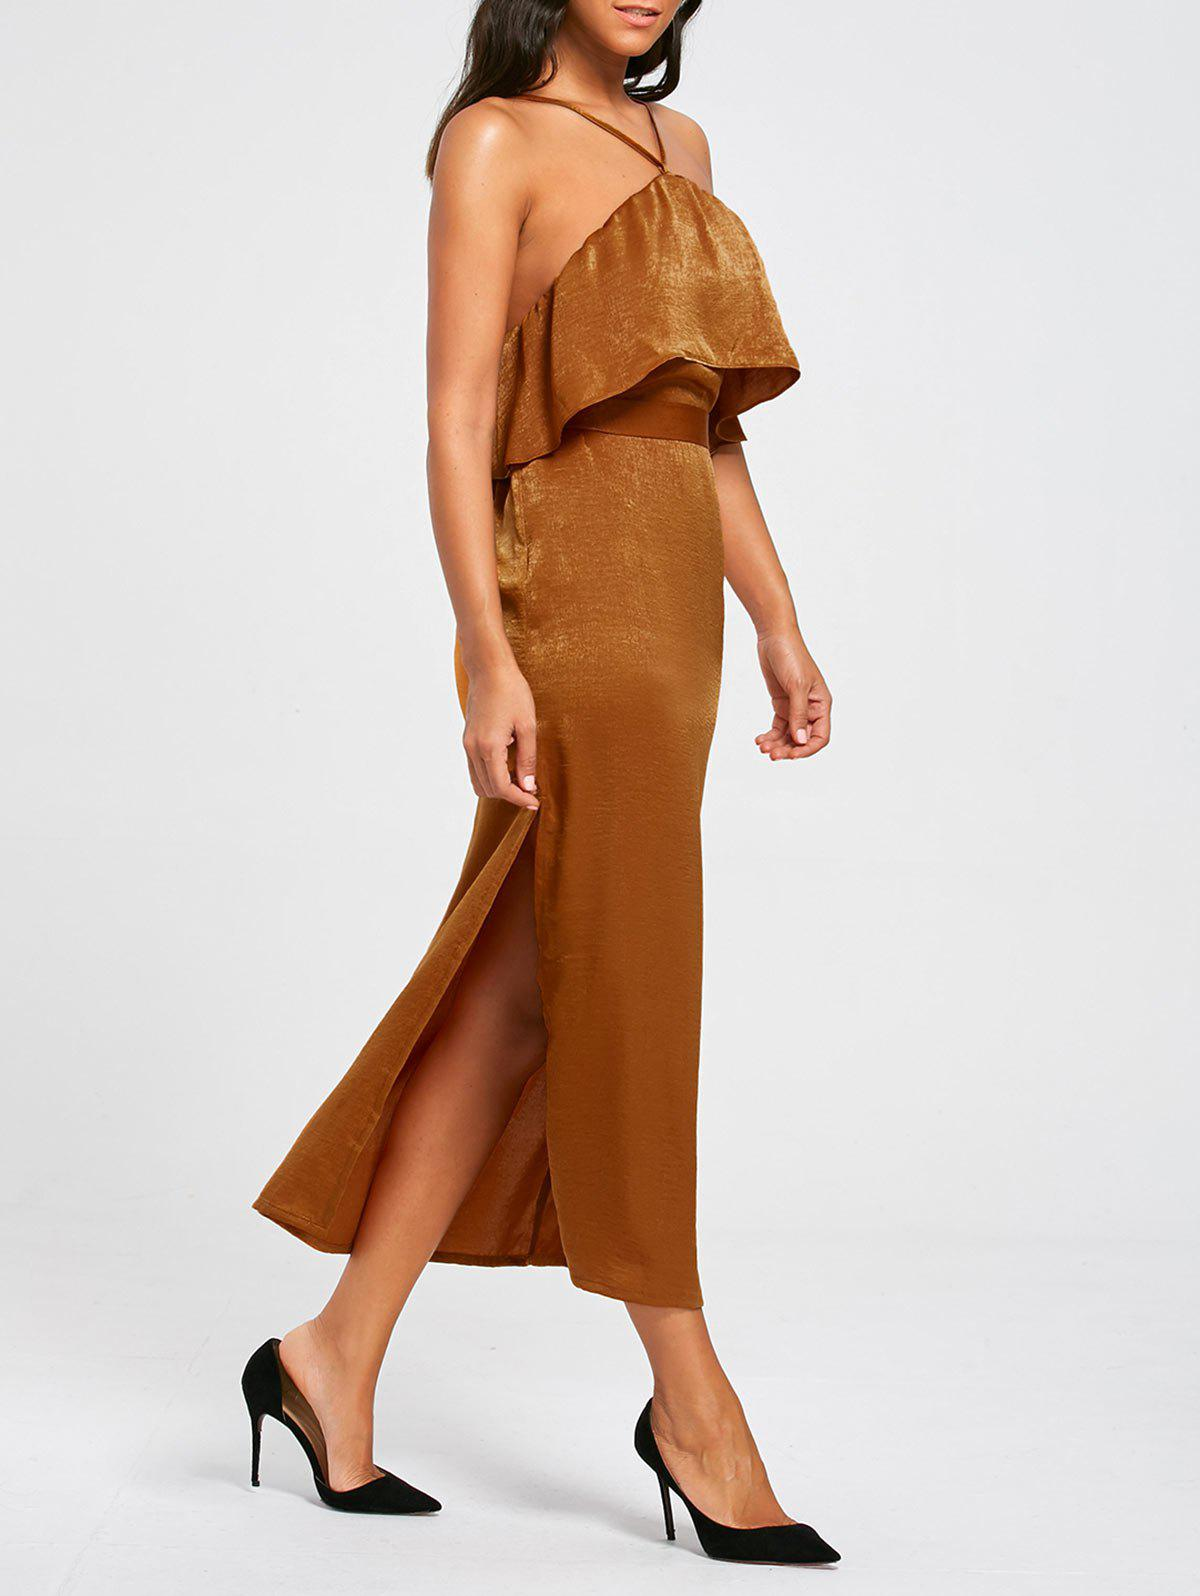 High Slit Long Sleeveless Bodycon Popover Dress - BROWN XL